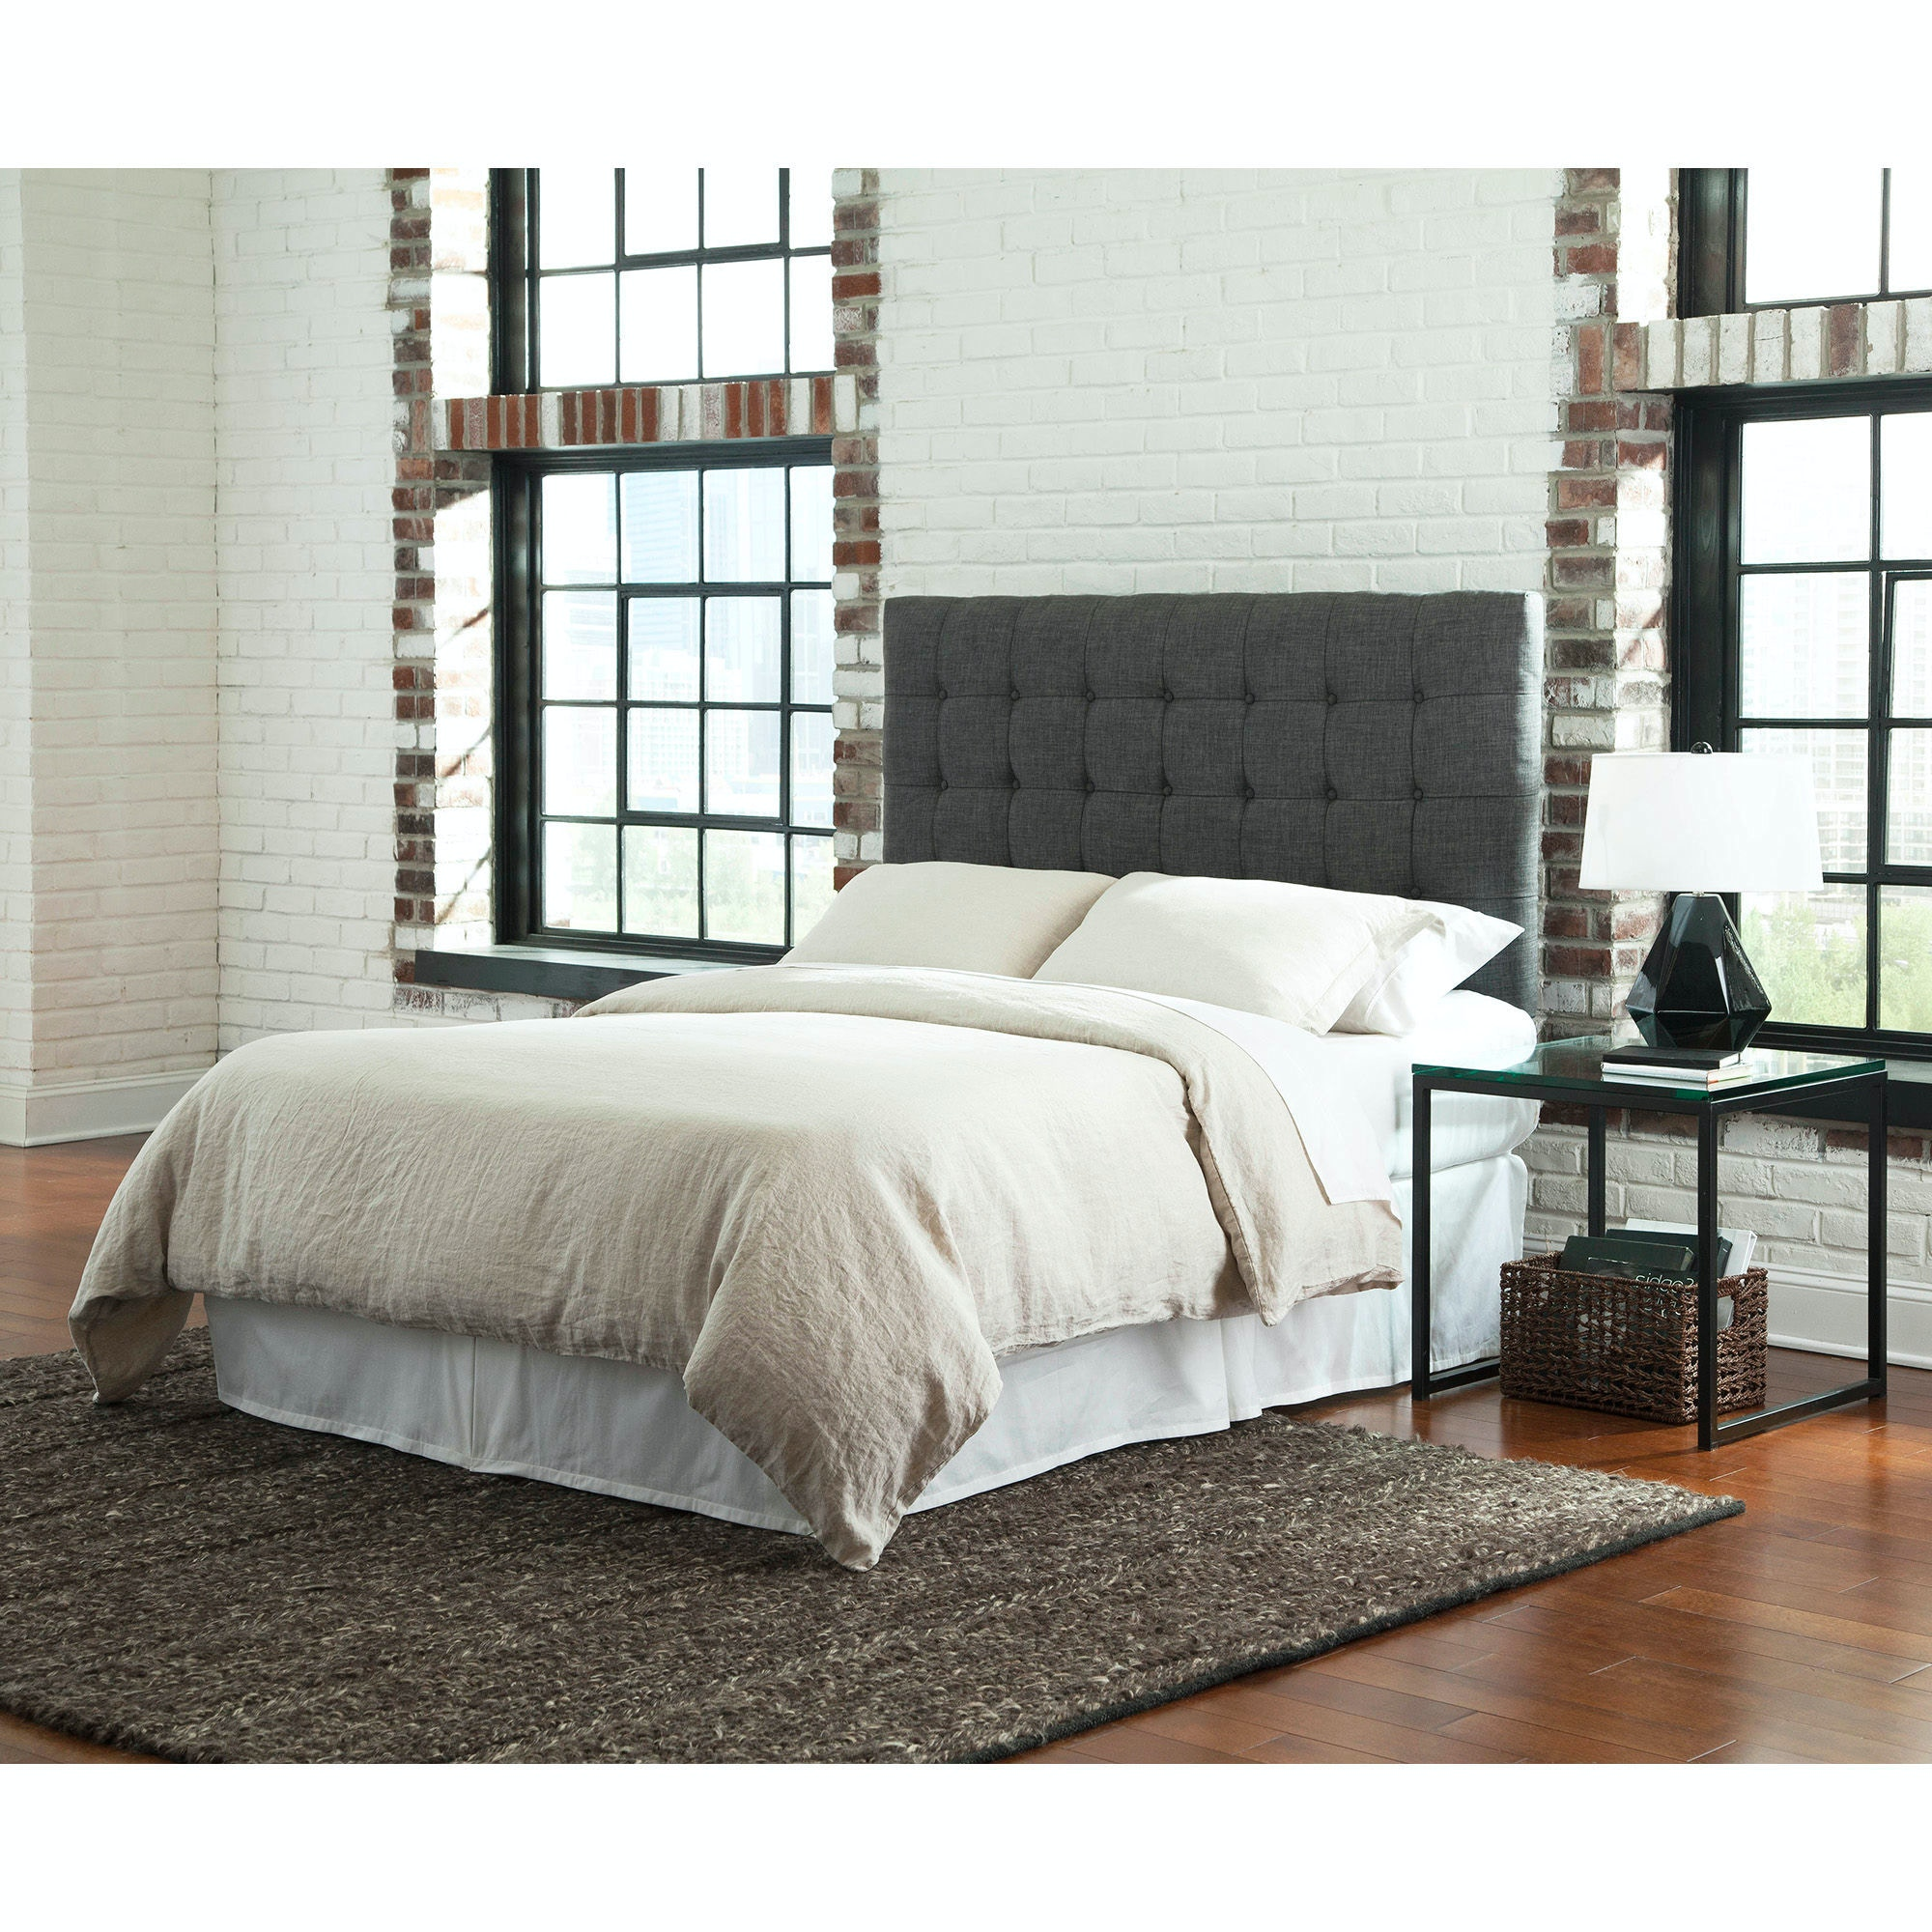 ... Fashion Bed Group Strasbourg Upholstered Adjustable Headboard Panel  With Solid Wood Frame And Button Tufted